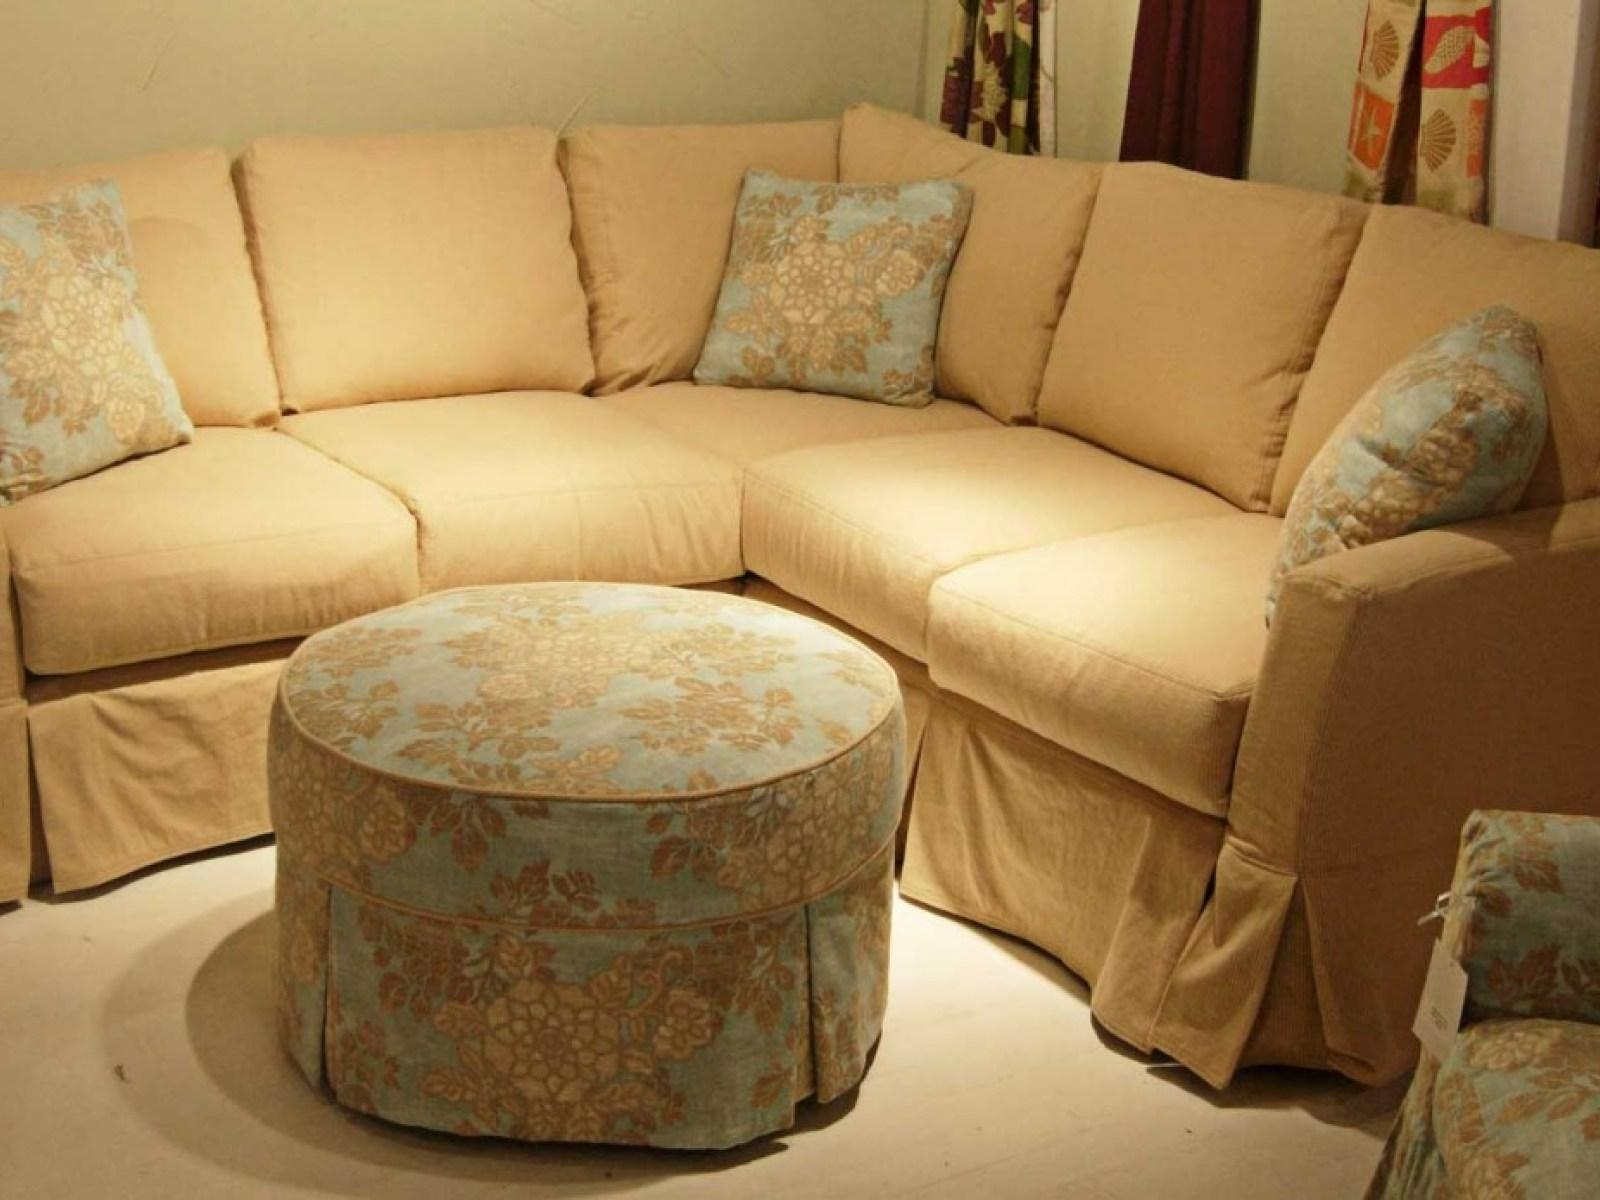 ☆▻ Sofa : 34 Recliner Sofa Covers Couch Slipcovers Target In Slipcovers For Sectional Sofas With Recliners (Image 2 of 20)